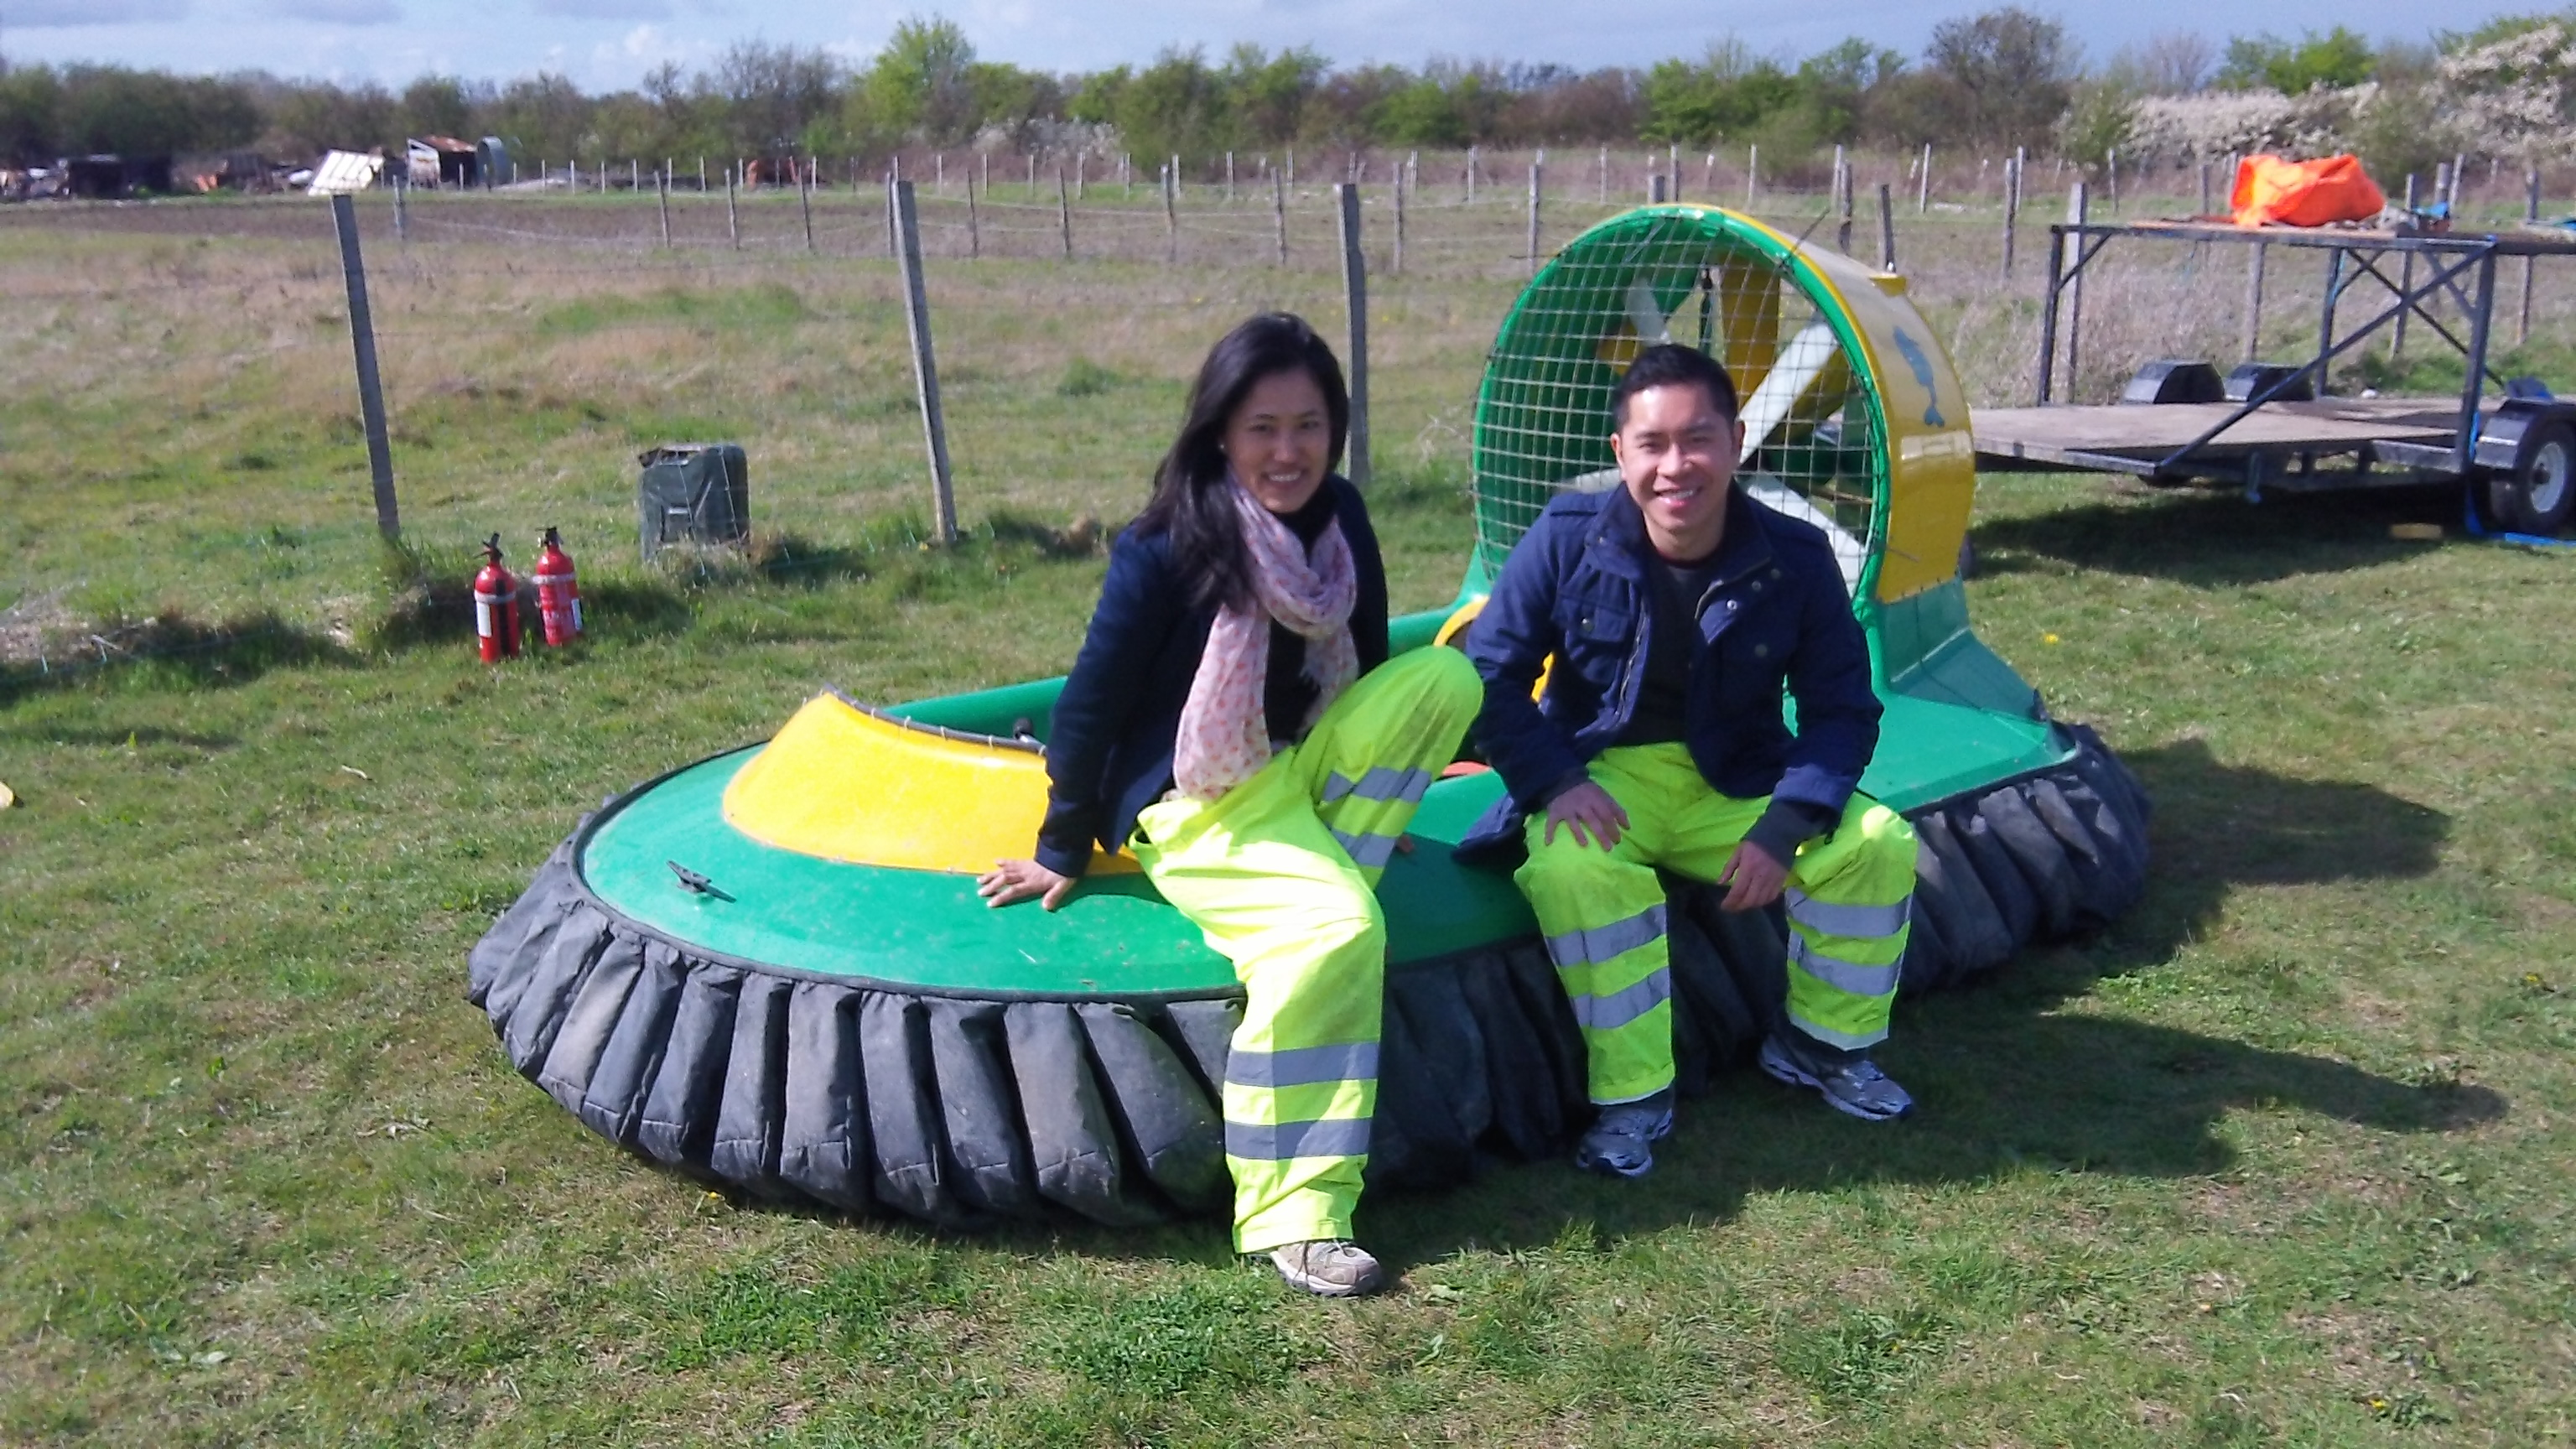 Hovercraft Adventures in Sandwich